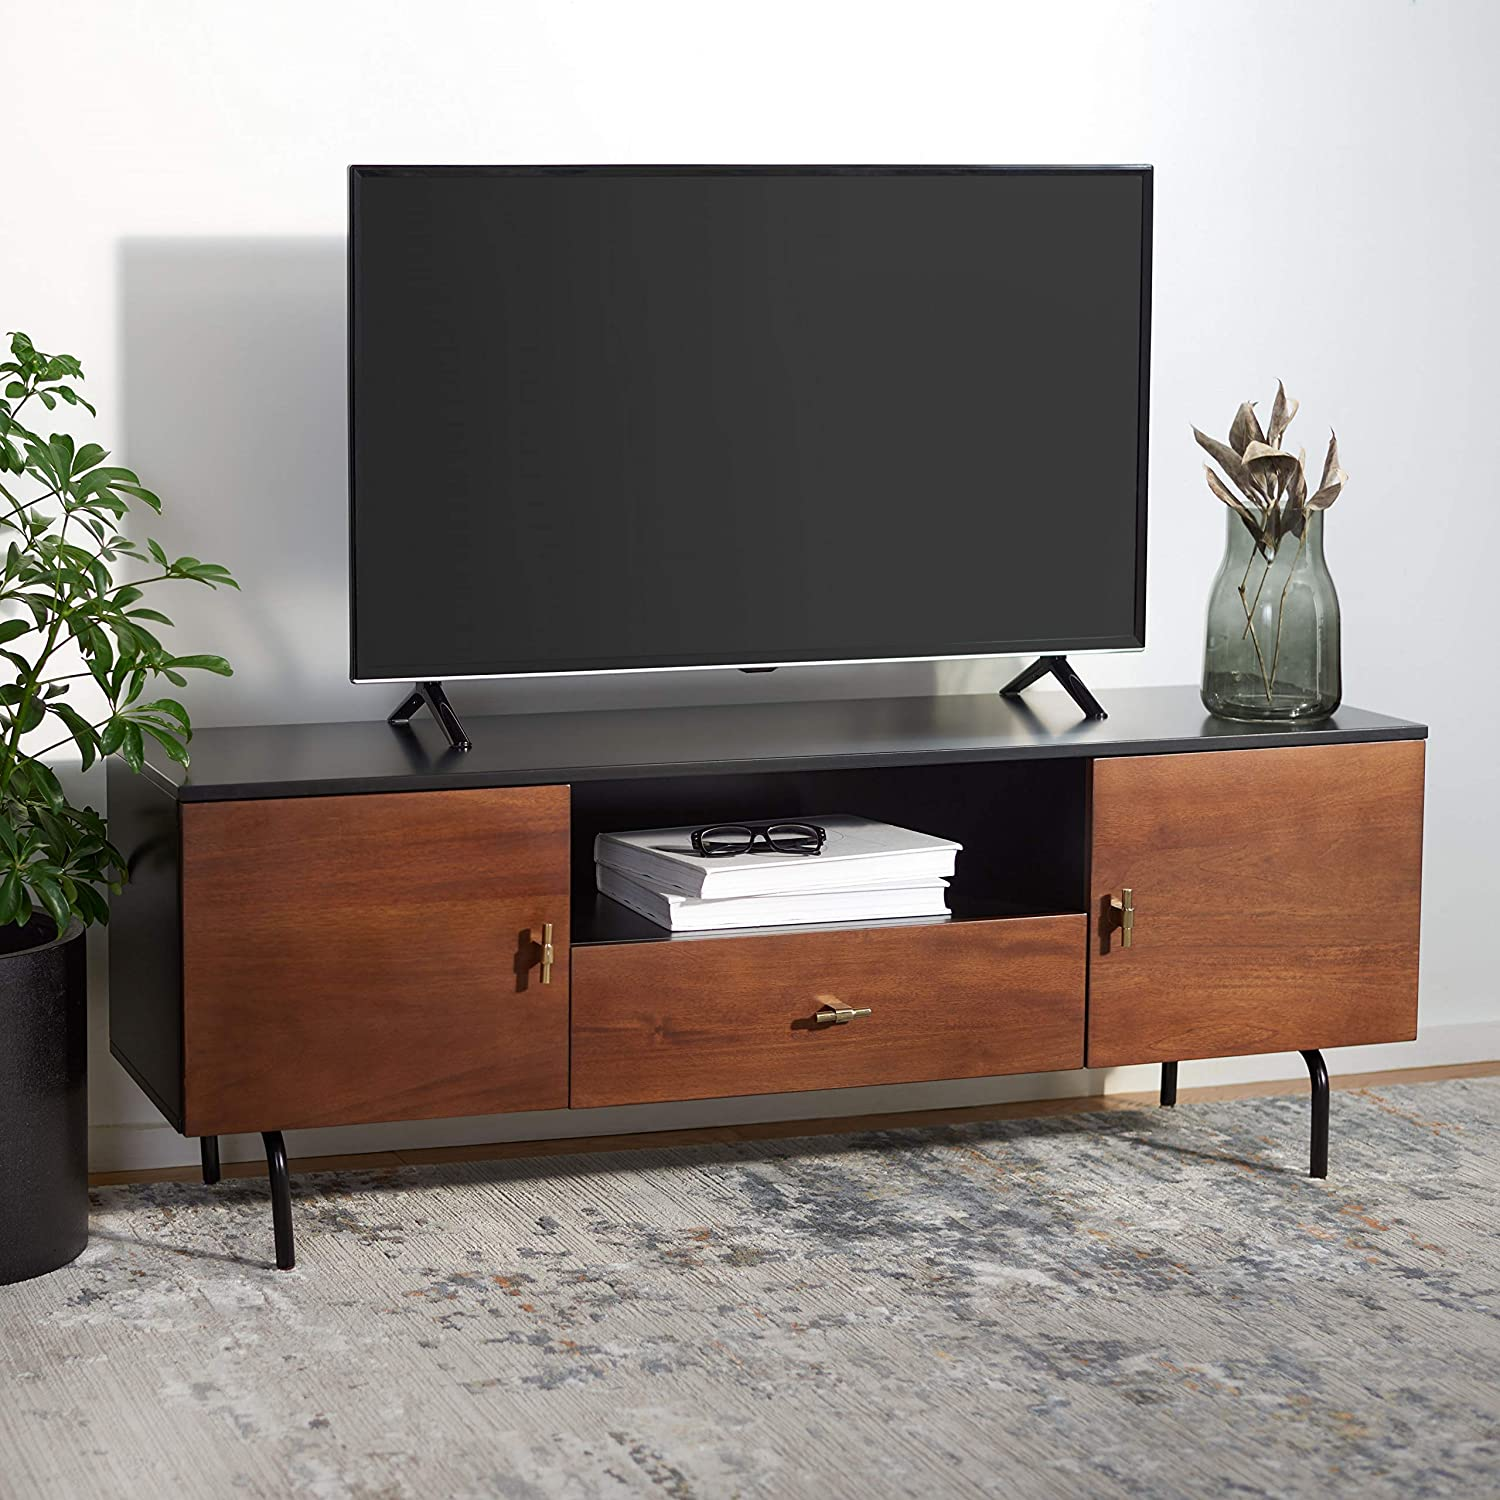 Safavieh Black/Walnut Home Collection Genevieve Media Stand (up to 60-inch Flat Screen TV), 54